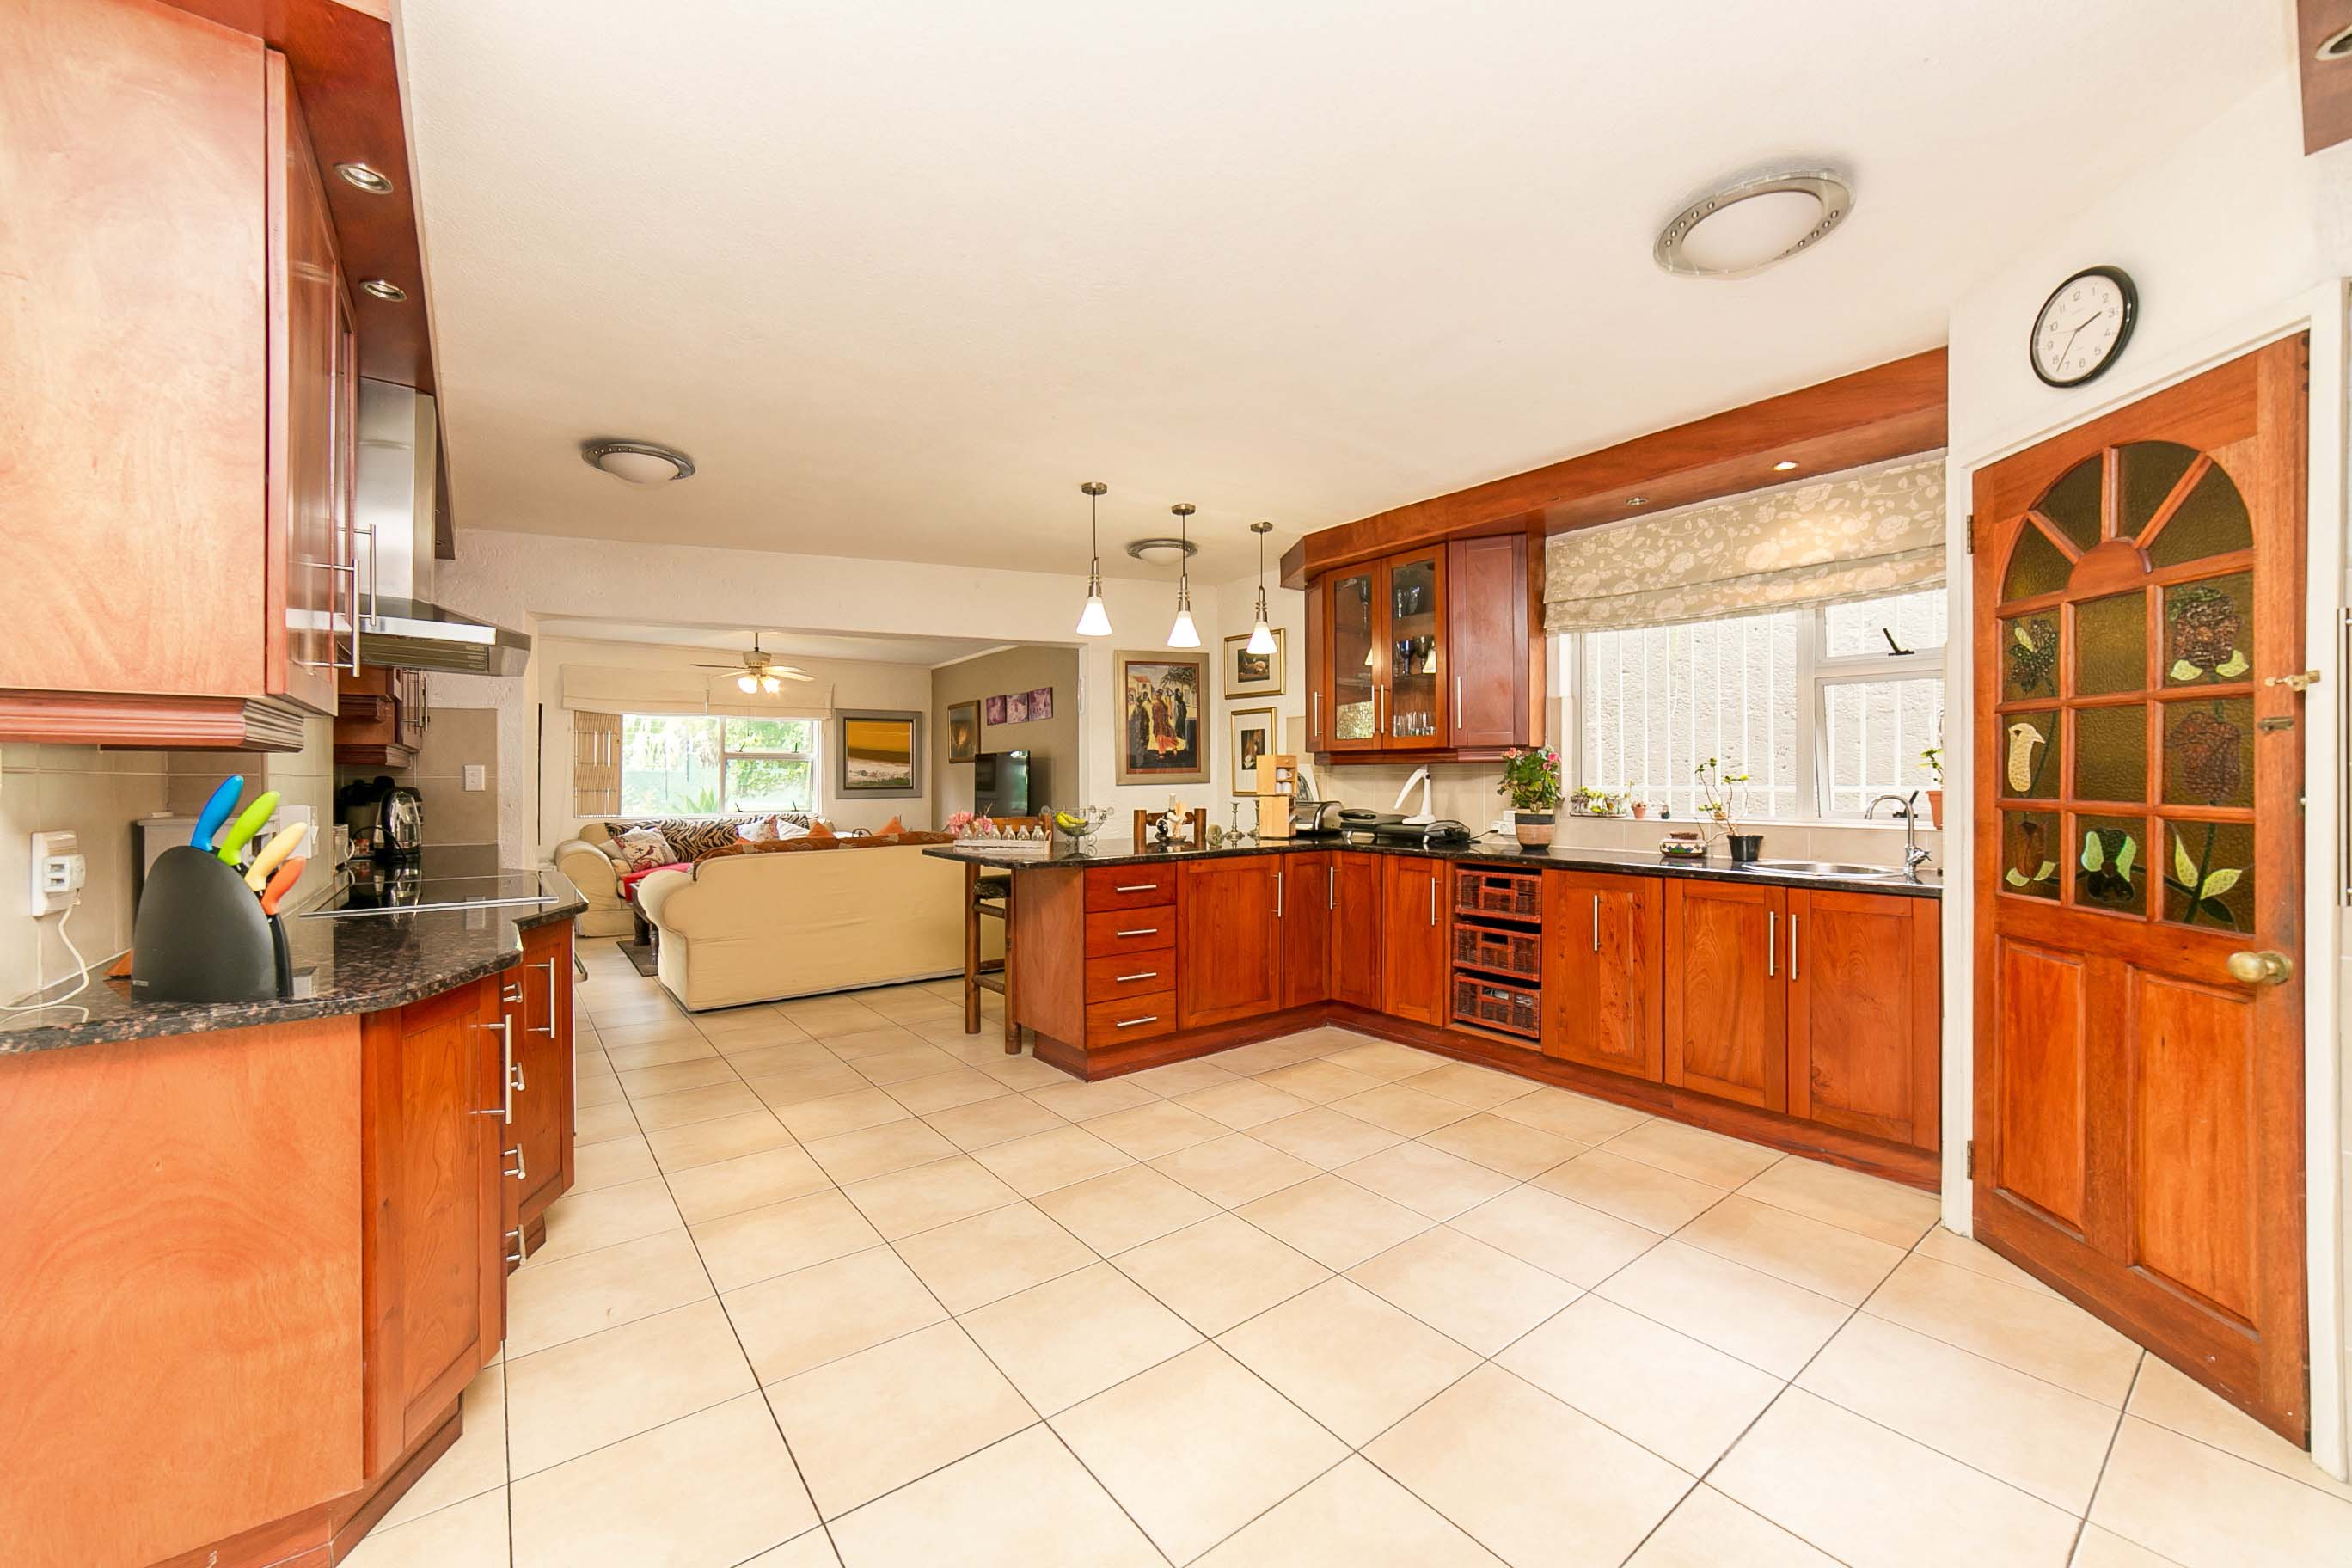 4 Bedroom House for sale in Lonehill ENT0082001 : photo#11